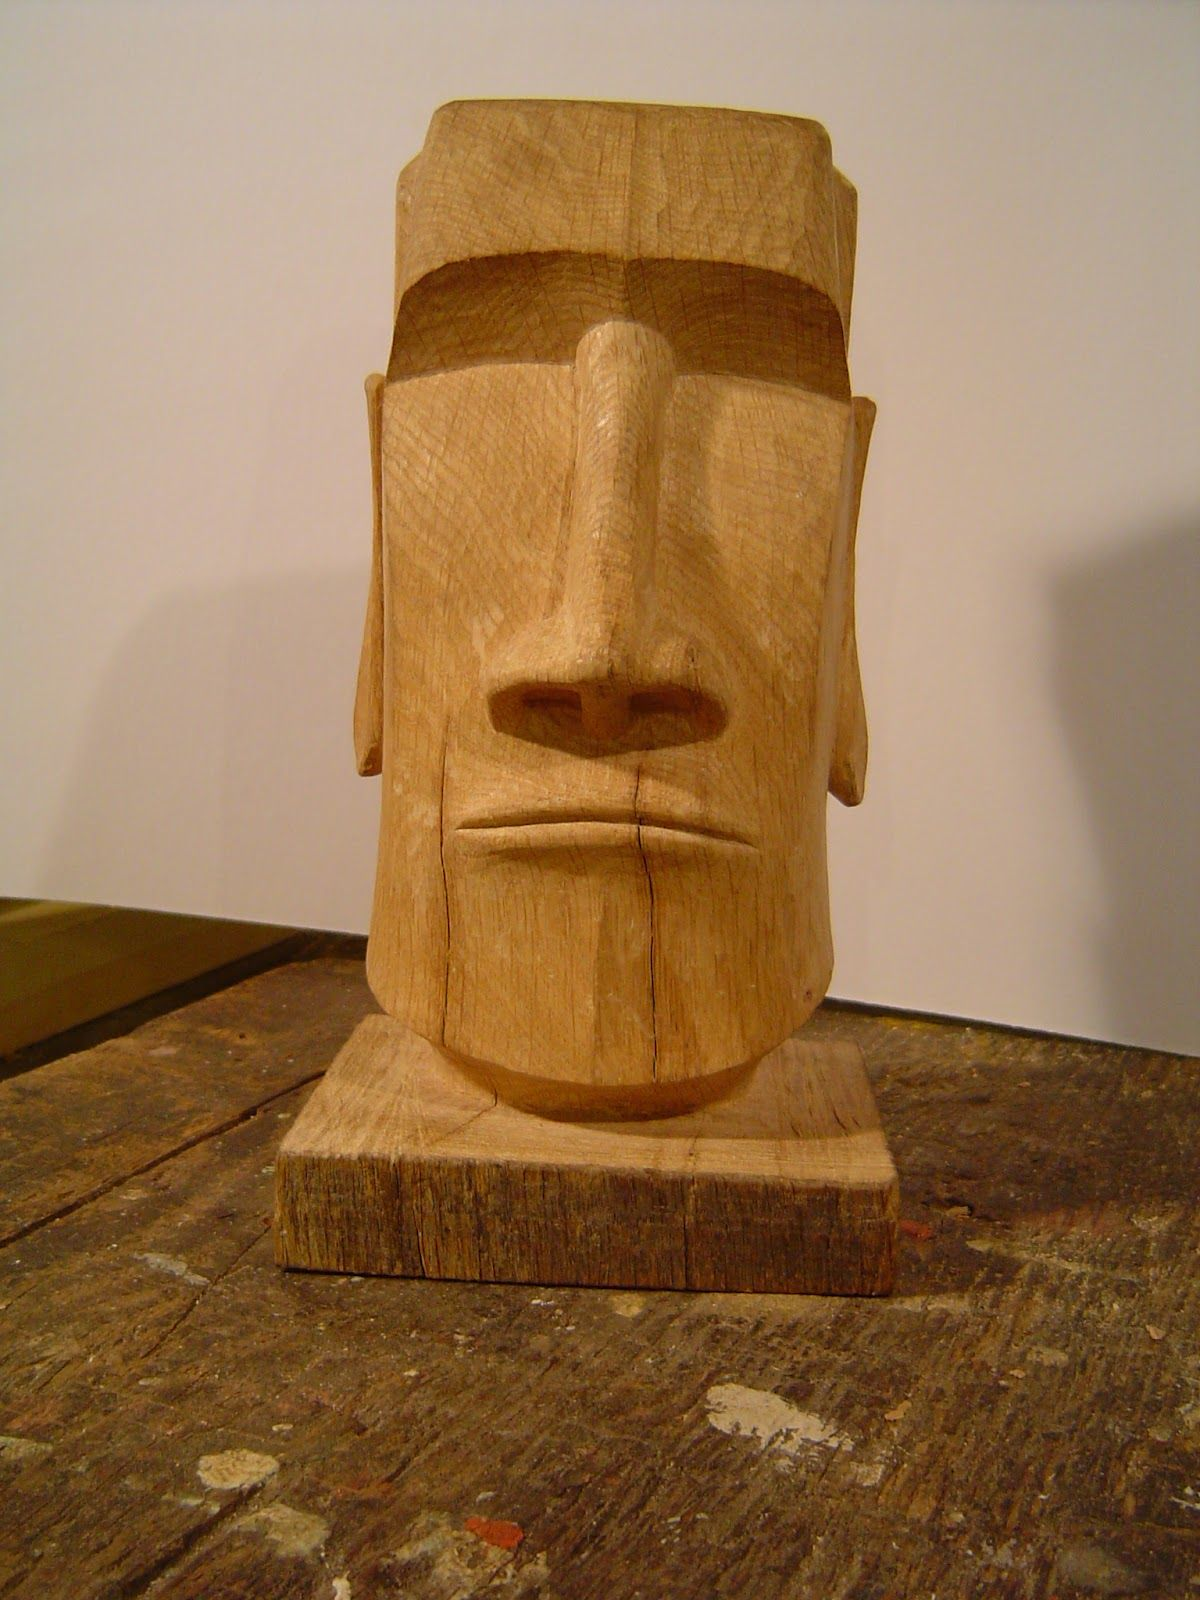 Pin by yaron dan goor on wood carving inspiration